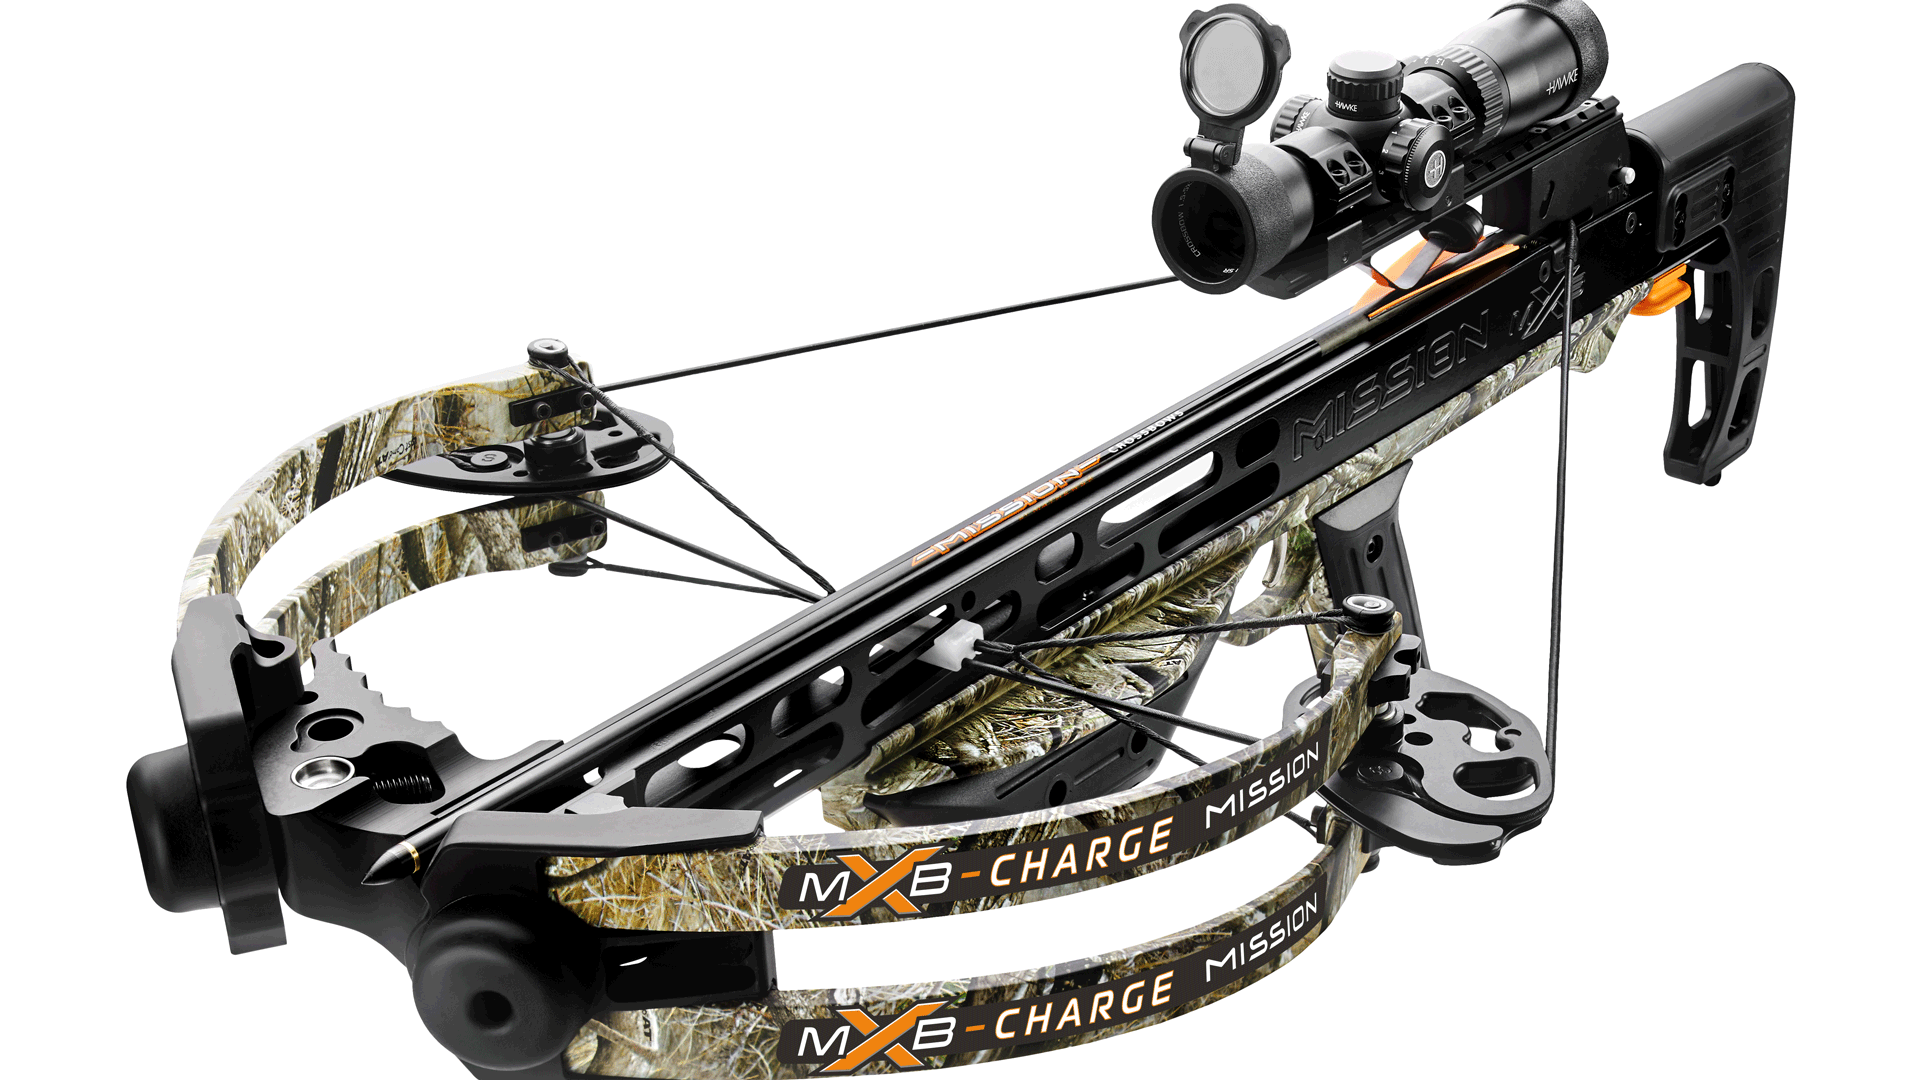 MXB-Charge crossbow